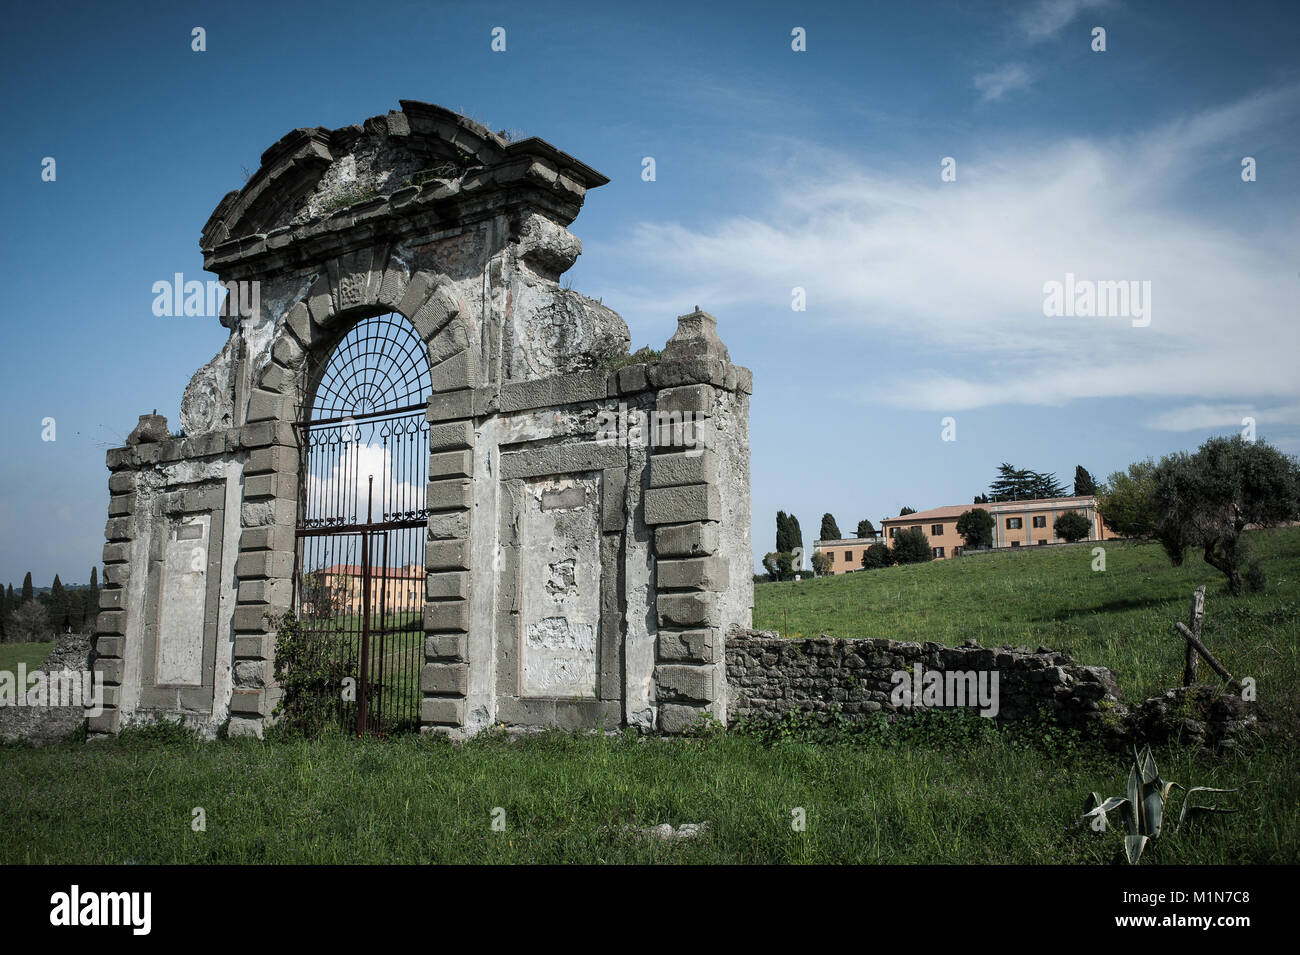 Old portal in the country Roman area Roman Castles - Stock Image